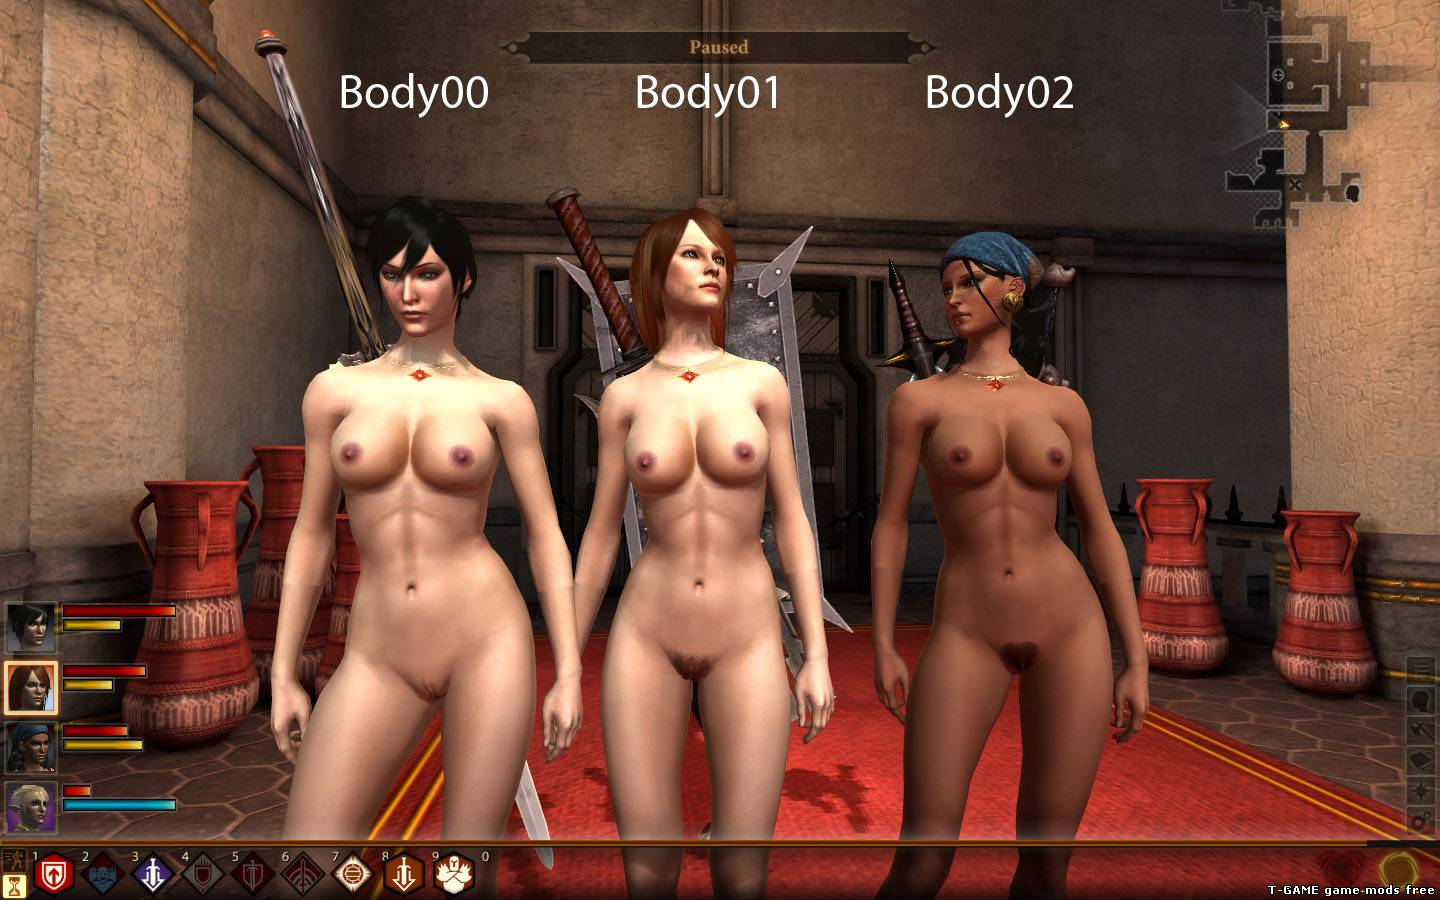 The darkness 2 nude mod nudes scene